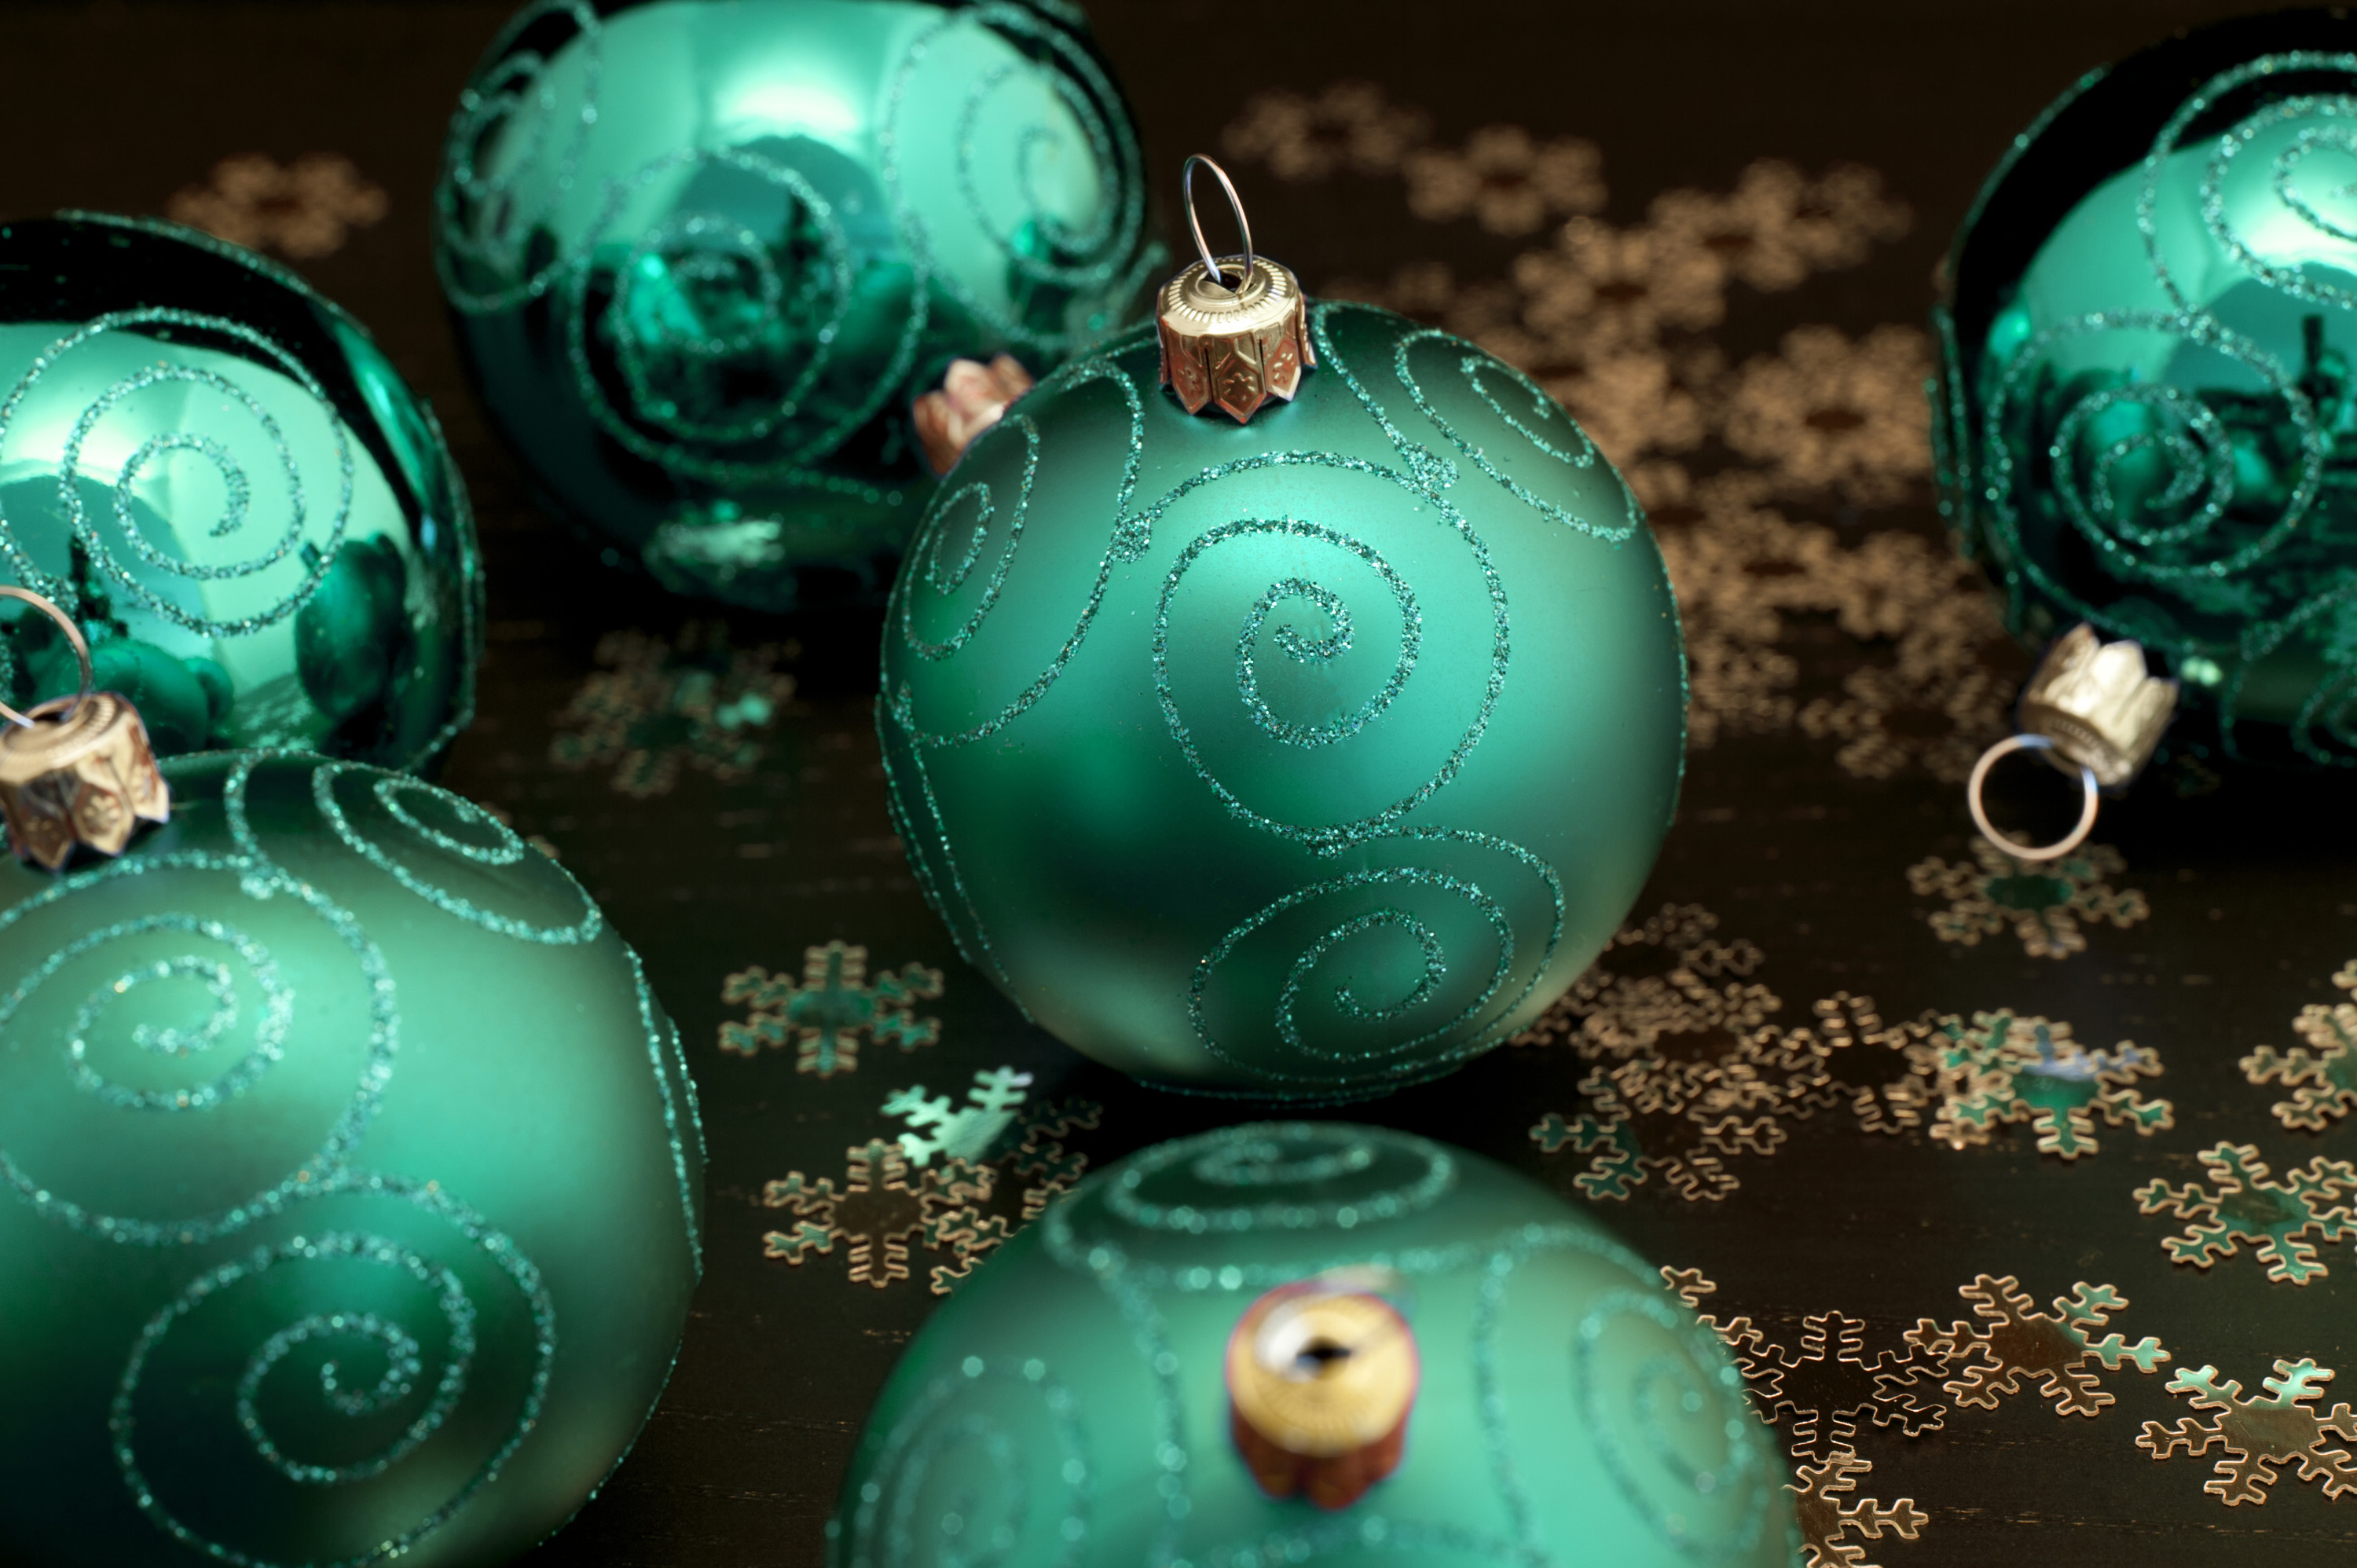 Emerald green Christmas balls patterned with glitter curlicues amongst scattered golden snowflakes